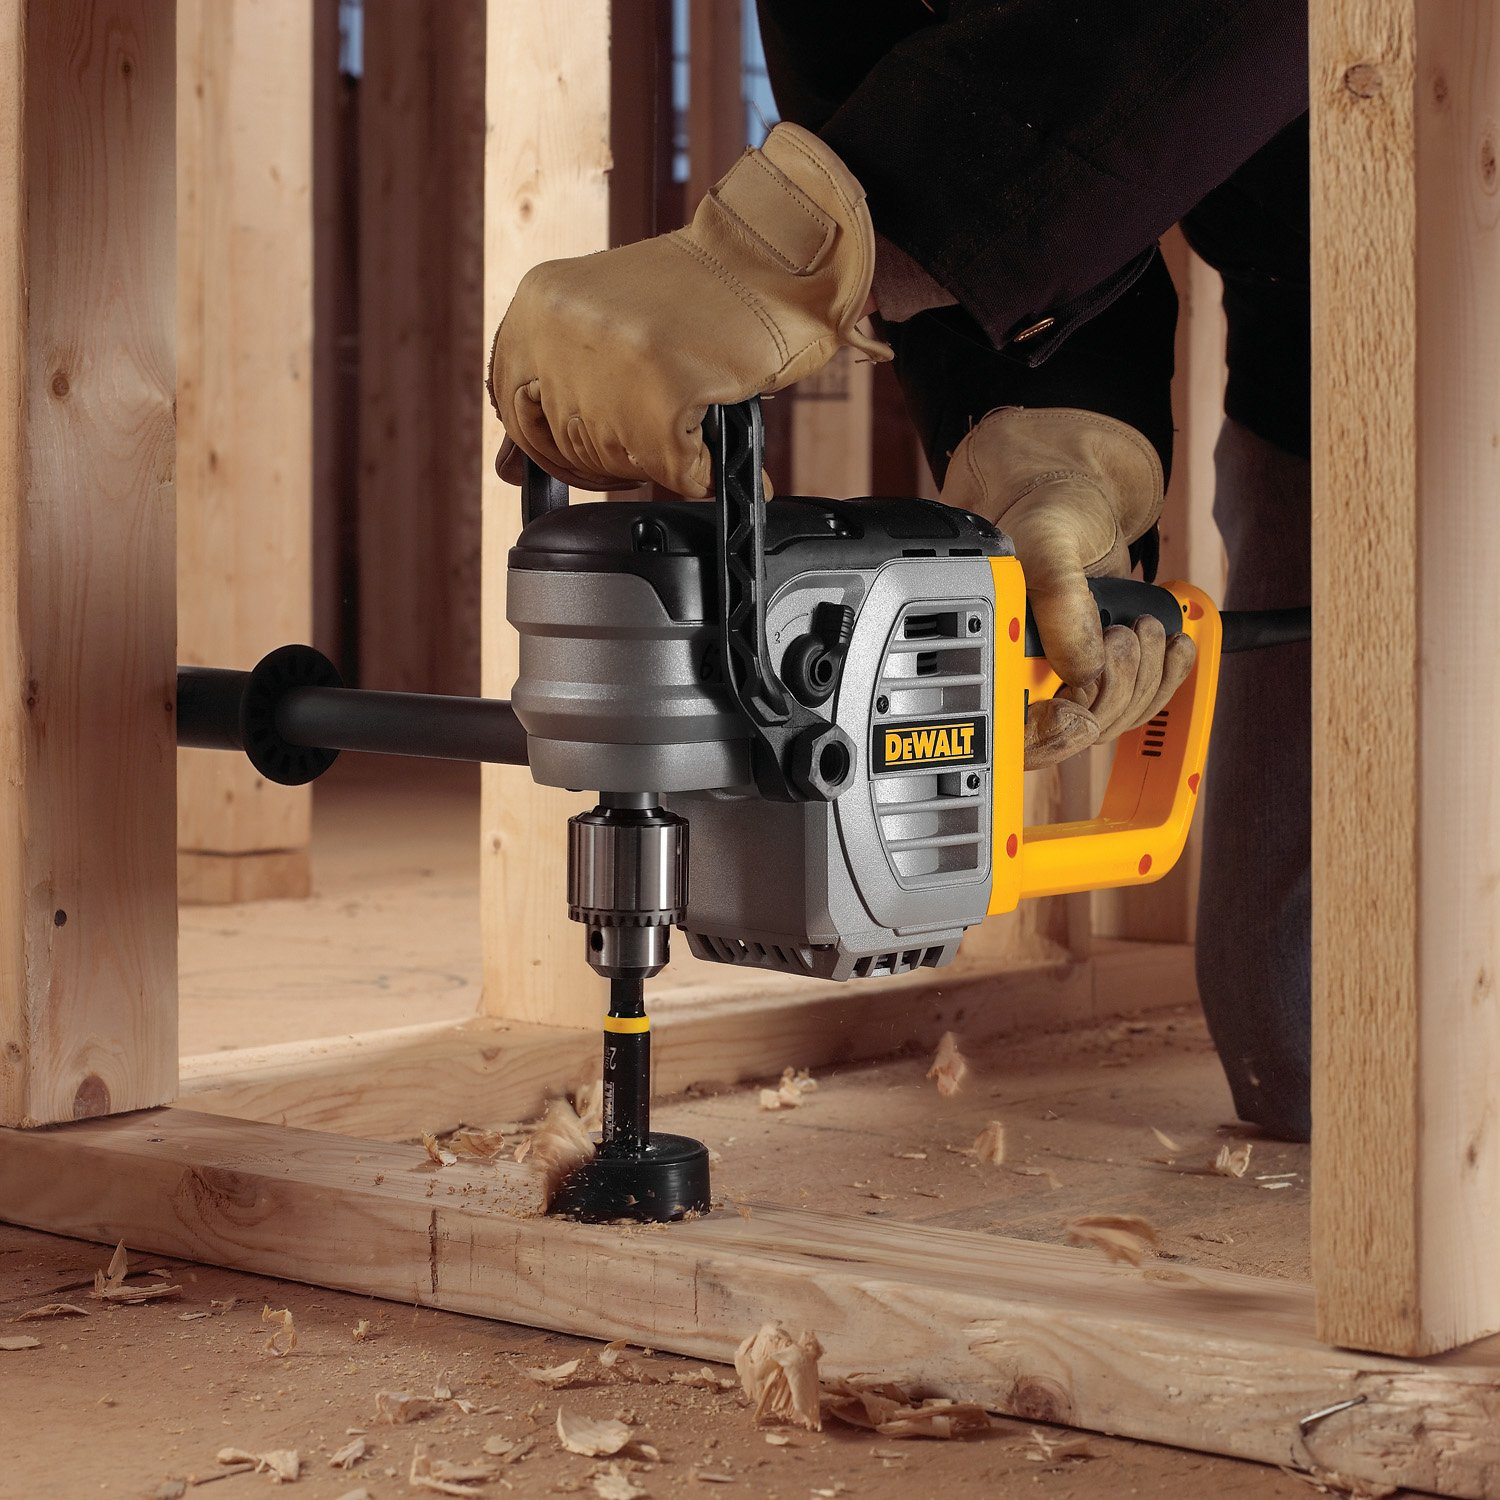 DEWALT DWD460 11 Amp 1/2-Inch Right Angle Stud and Joist Drill with on simple switch schematics, switch layouts, motor schematics, generator schematics, switch body, switch wiring symbols, switch installation, strobe light schematics, switch power, switch wiring basics,